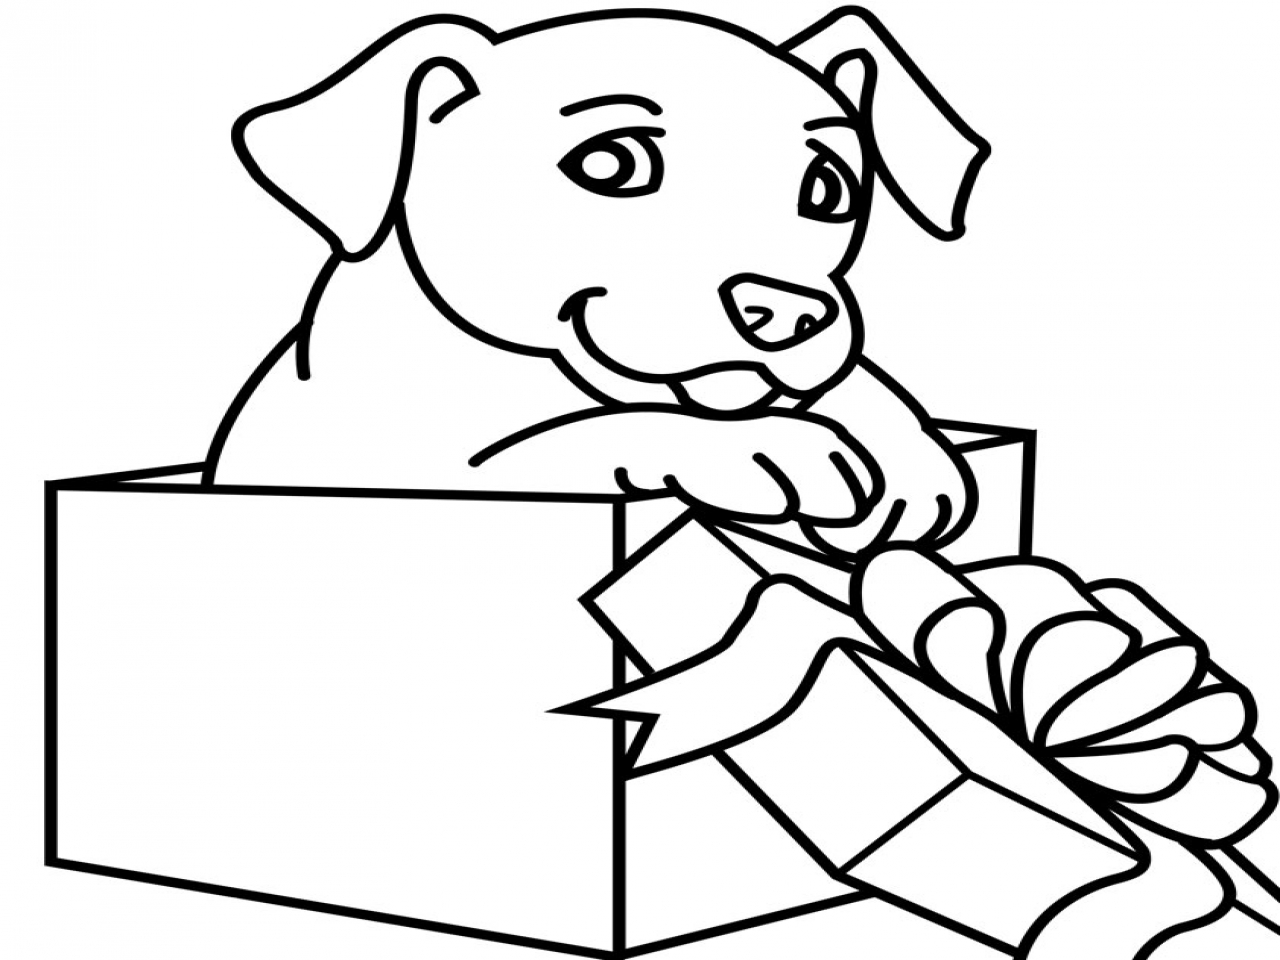 Puppy Coloring Pages Christmas - Coloring Page - Coloring Home | 960x1280